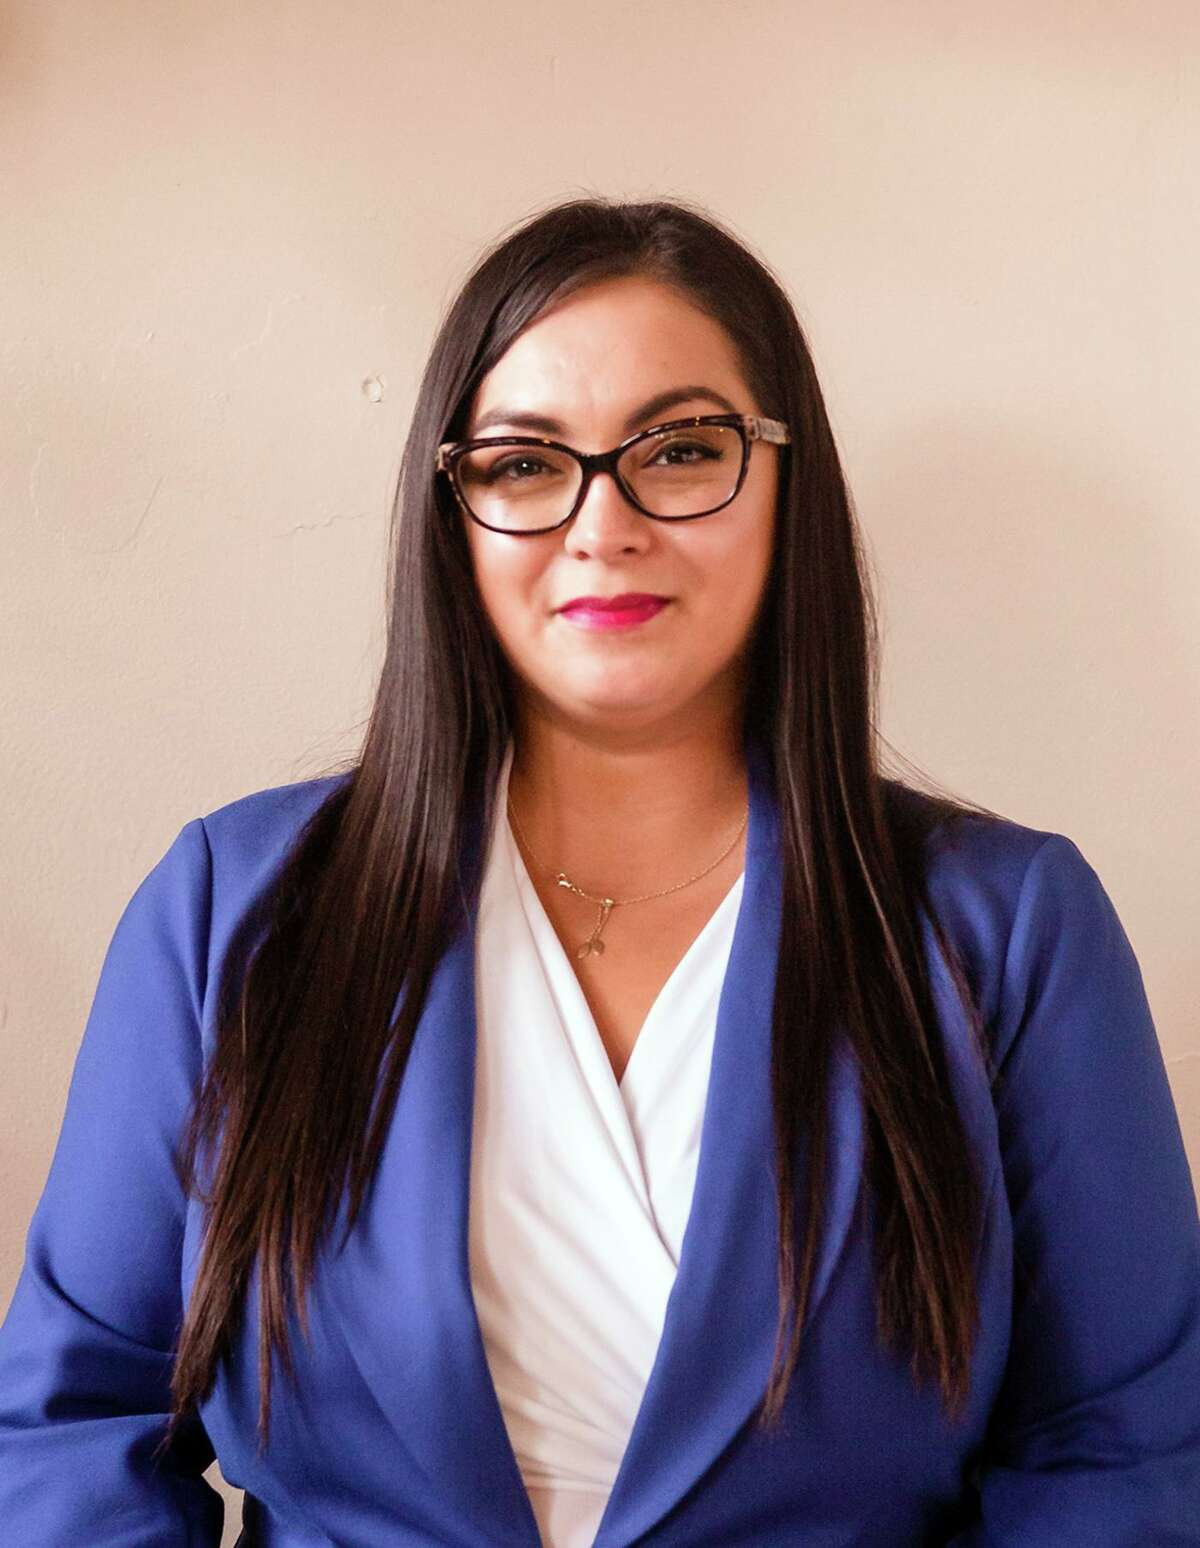 Marie Crabb of San Antonio may become the first Native American to run for City Council. She's a real estate agent who has been involved in Native American issues, including protests against institutions holding on to Native American remains.